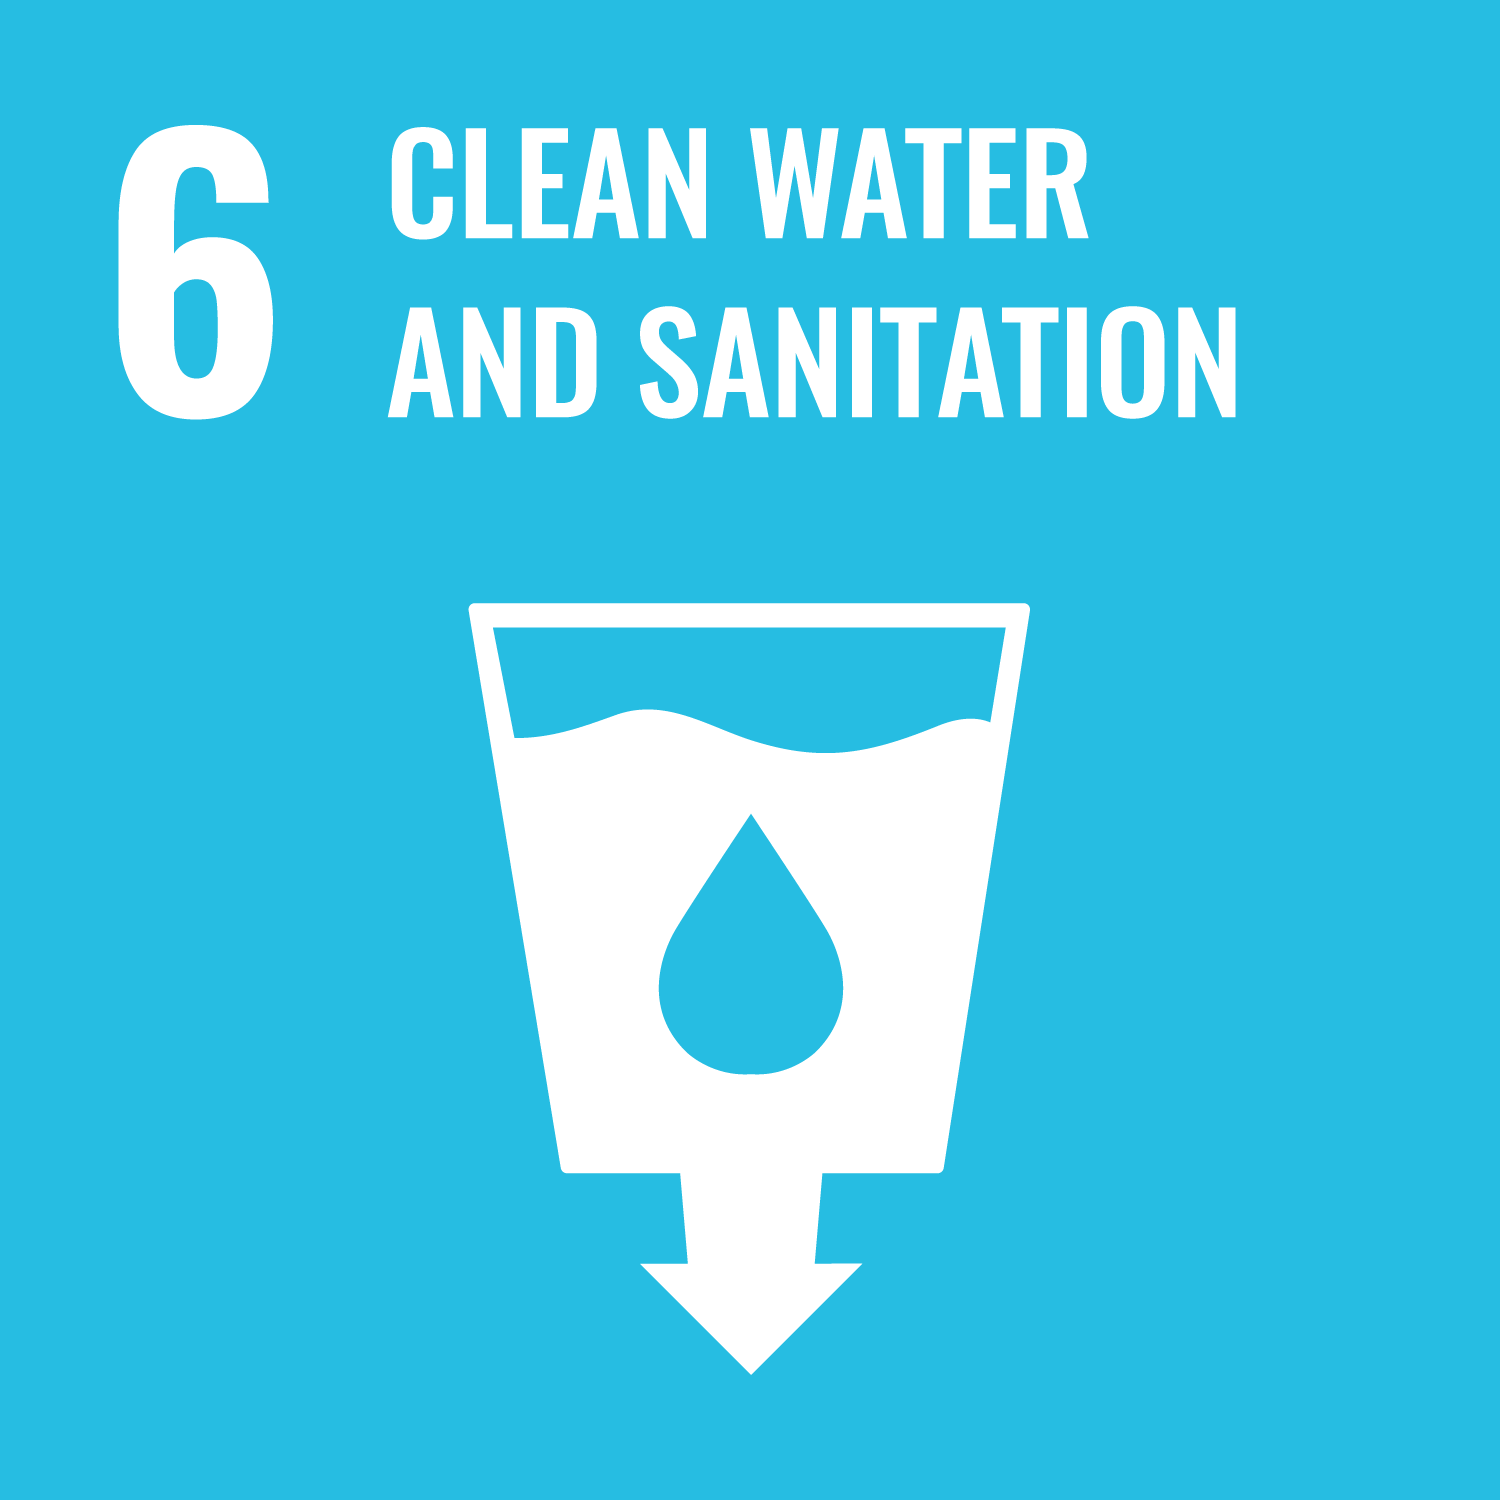 Clean water and sanitation.